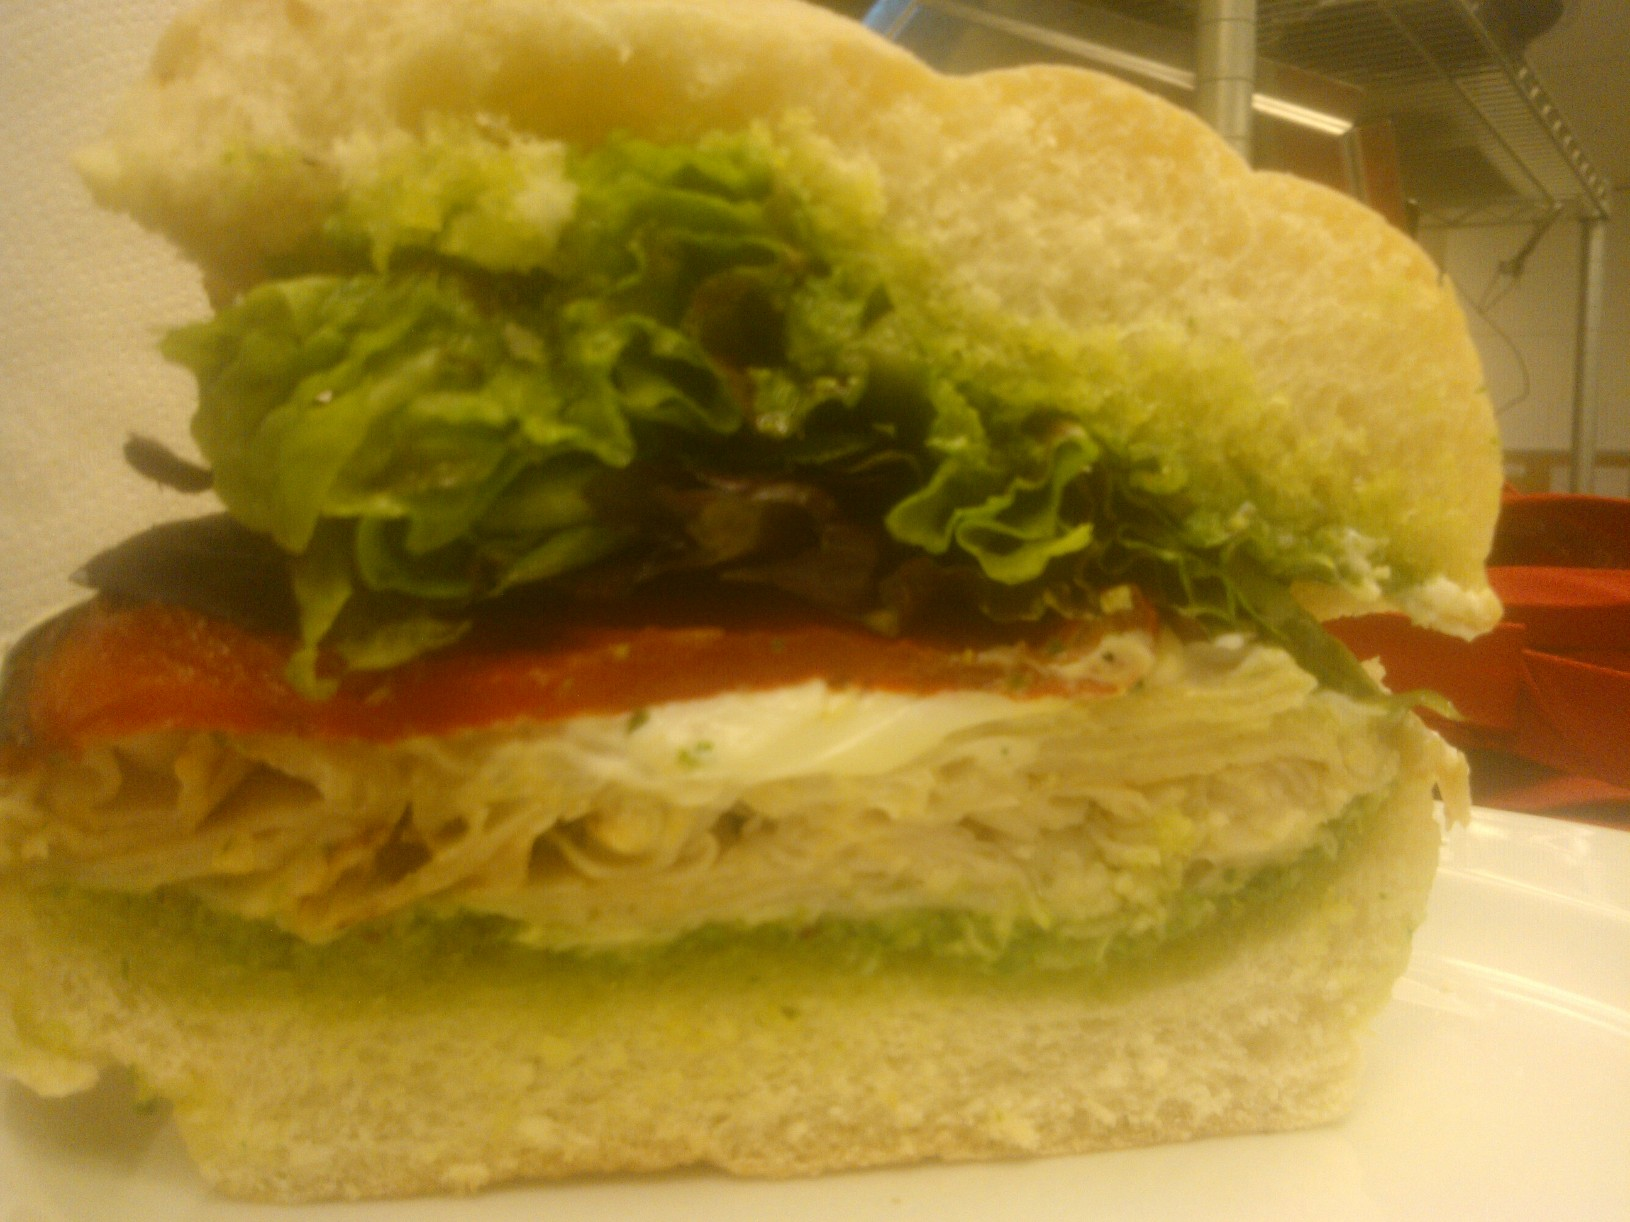 Warm Chevre And Turkey Sandwich